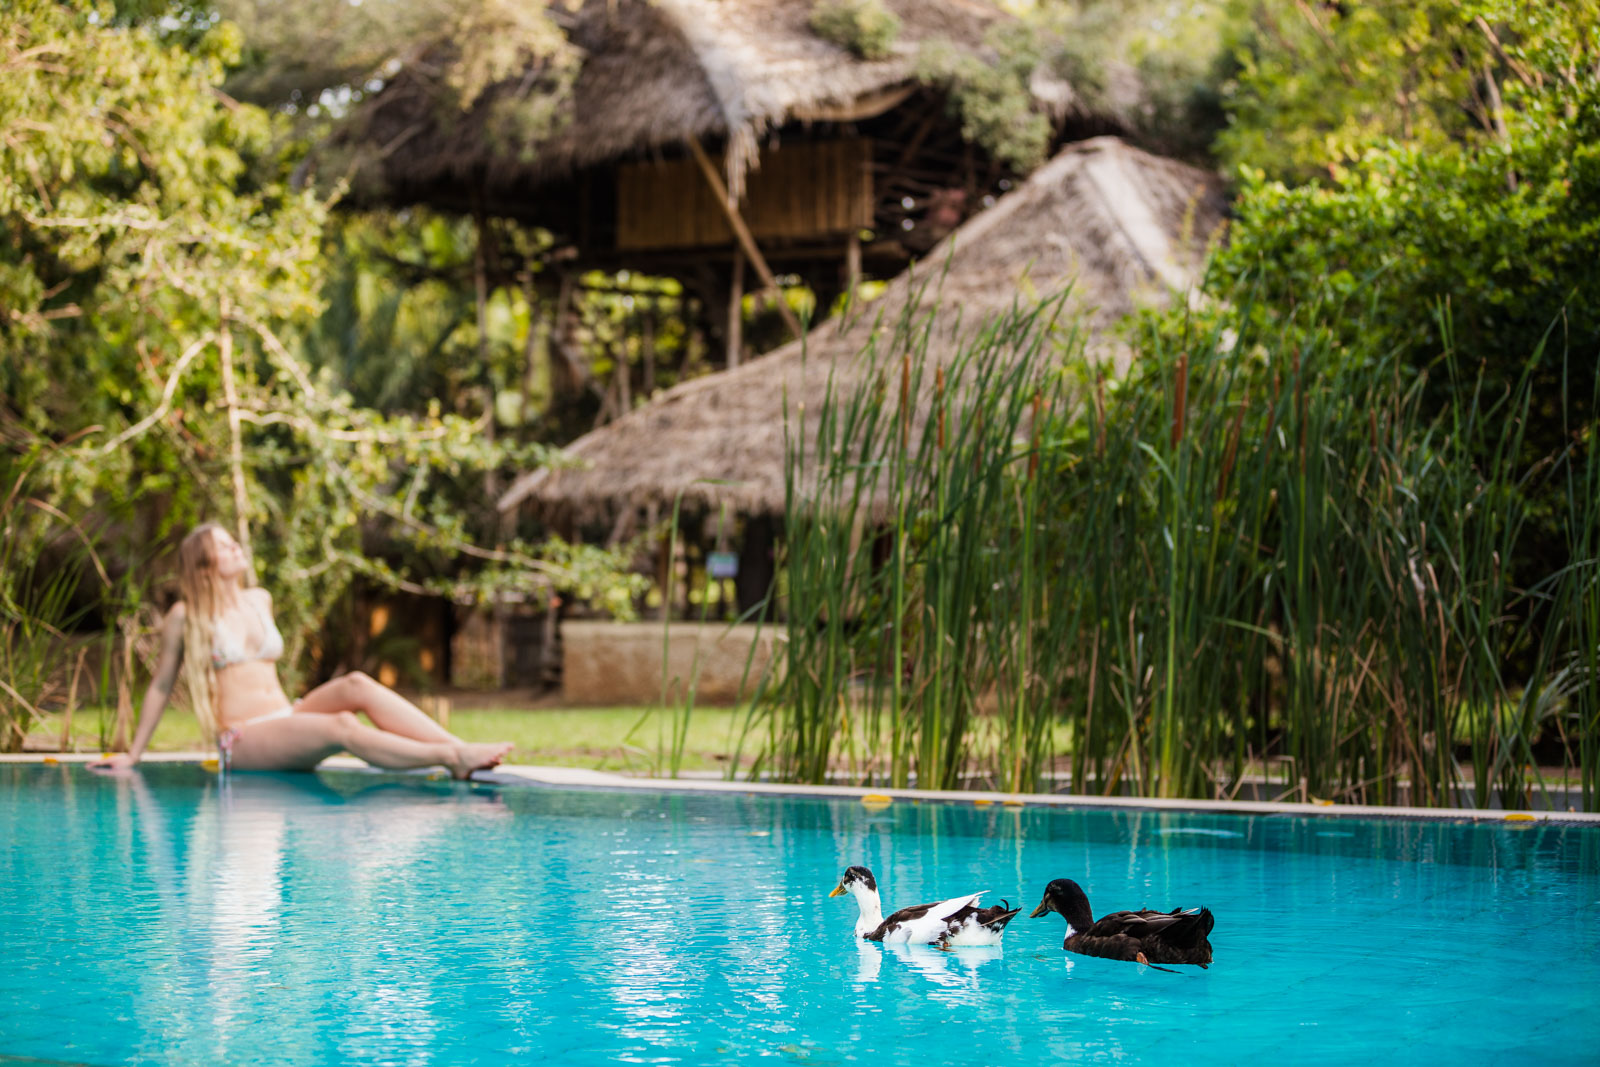 ducks-pool-eco-lodge-saraii-village-yala-sri-lanka